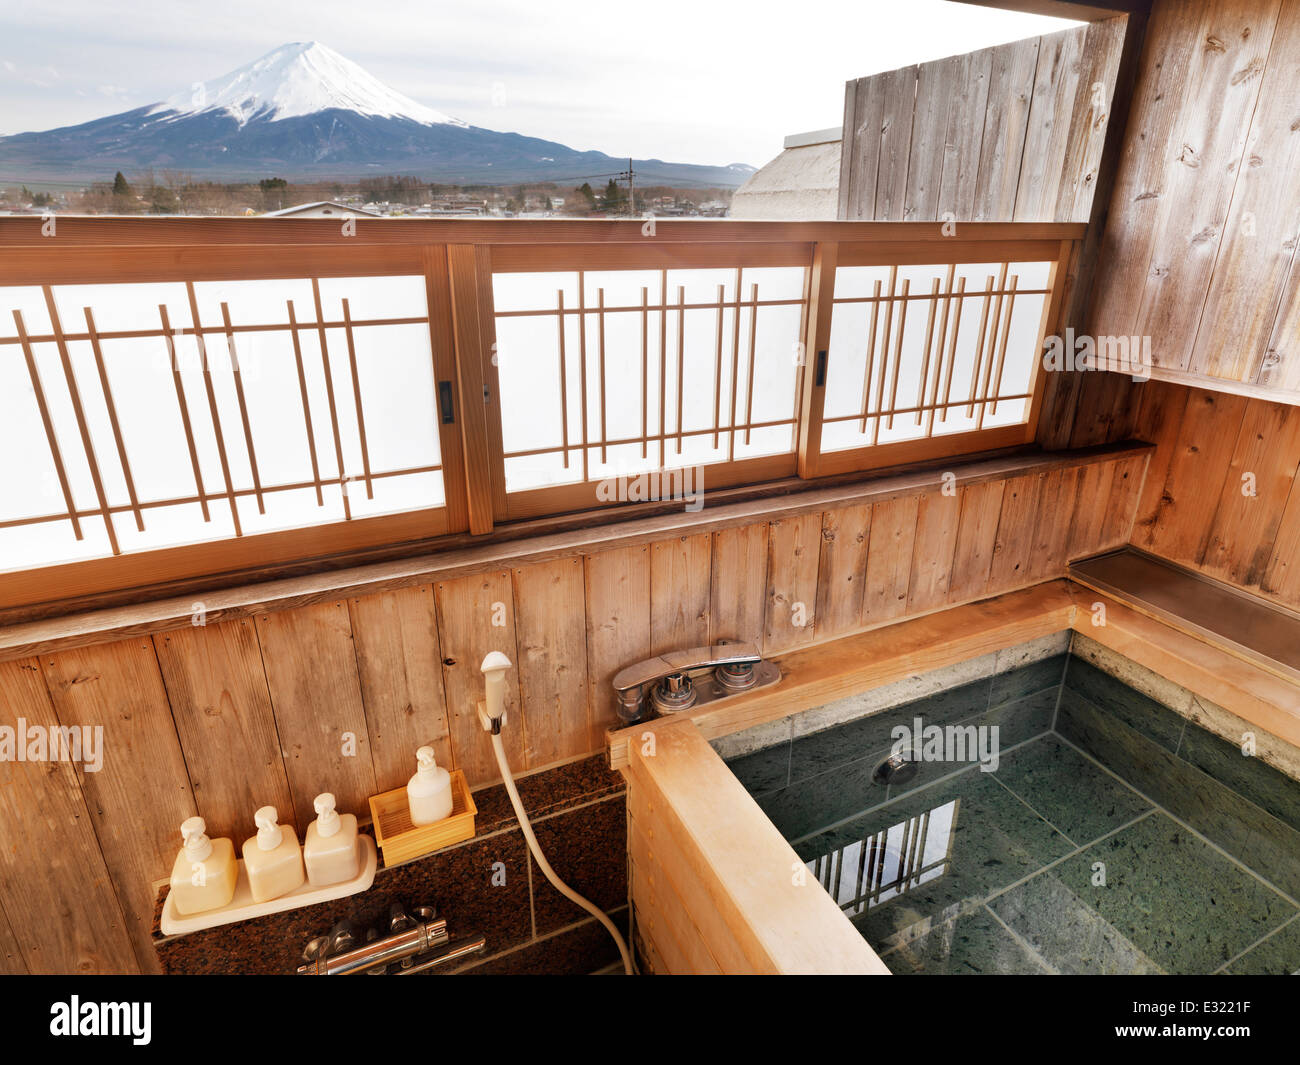 Onsen Hot Spring Bath Tab At Ryokan With Mount Fuji View Stock